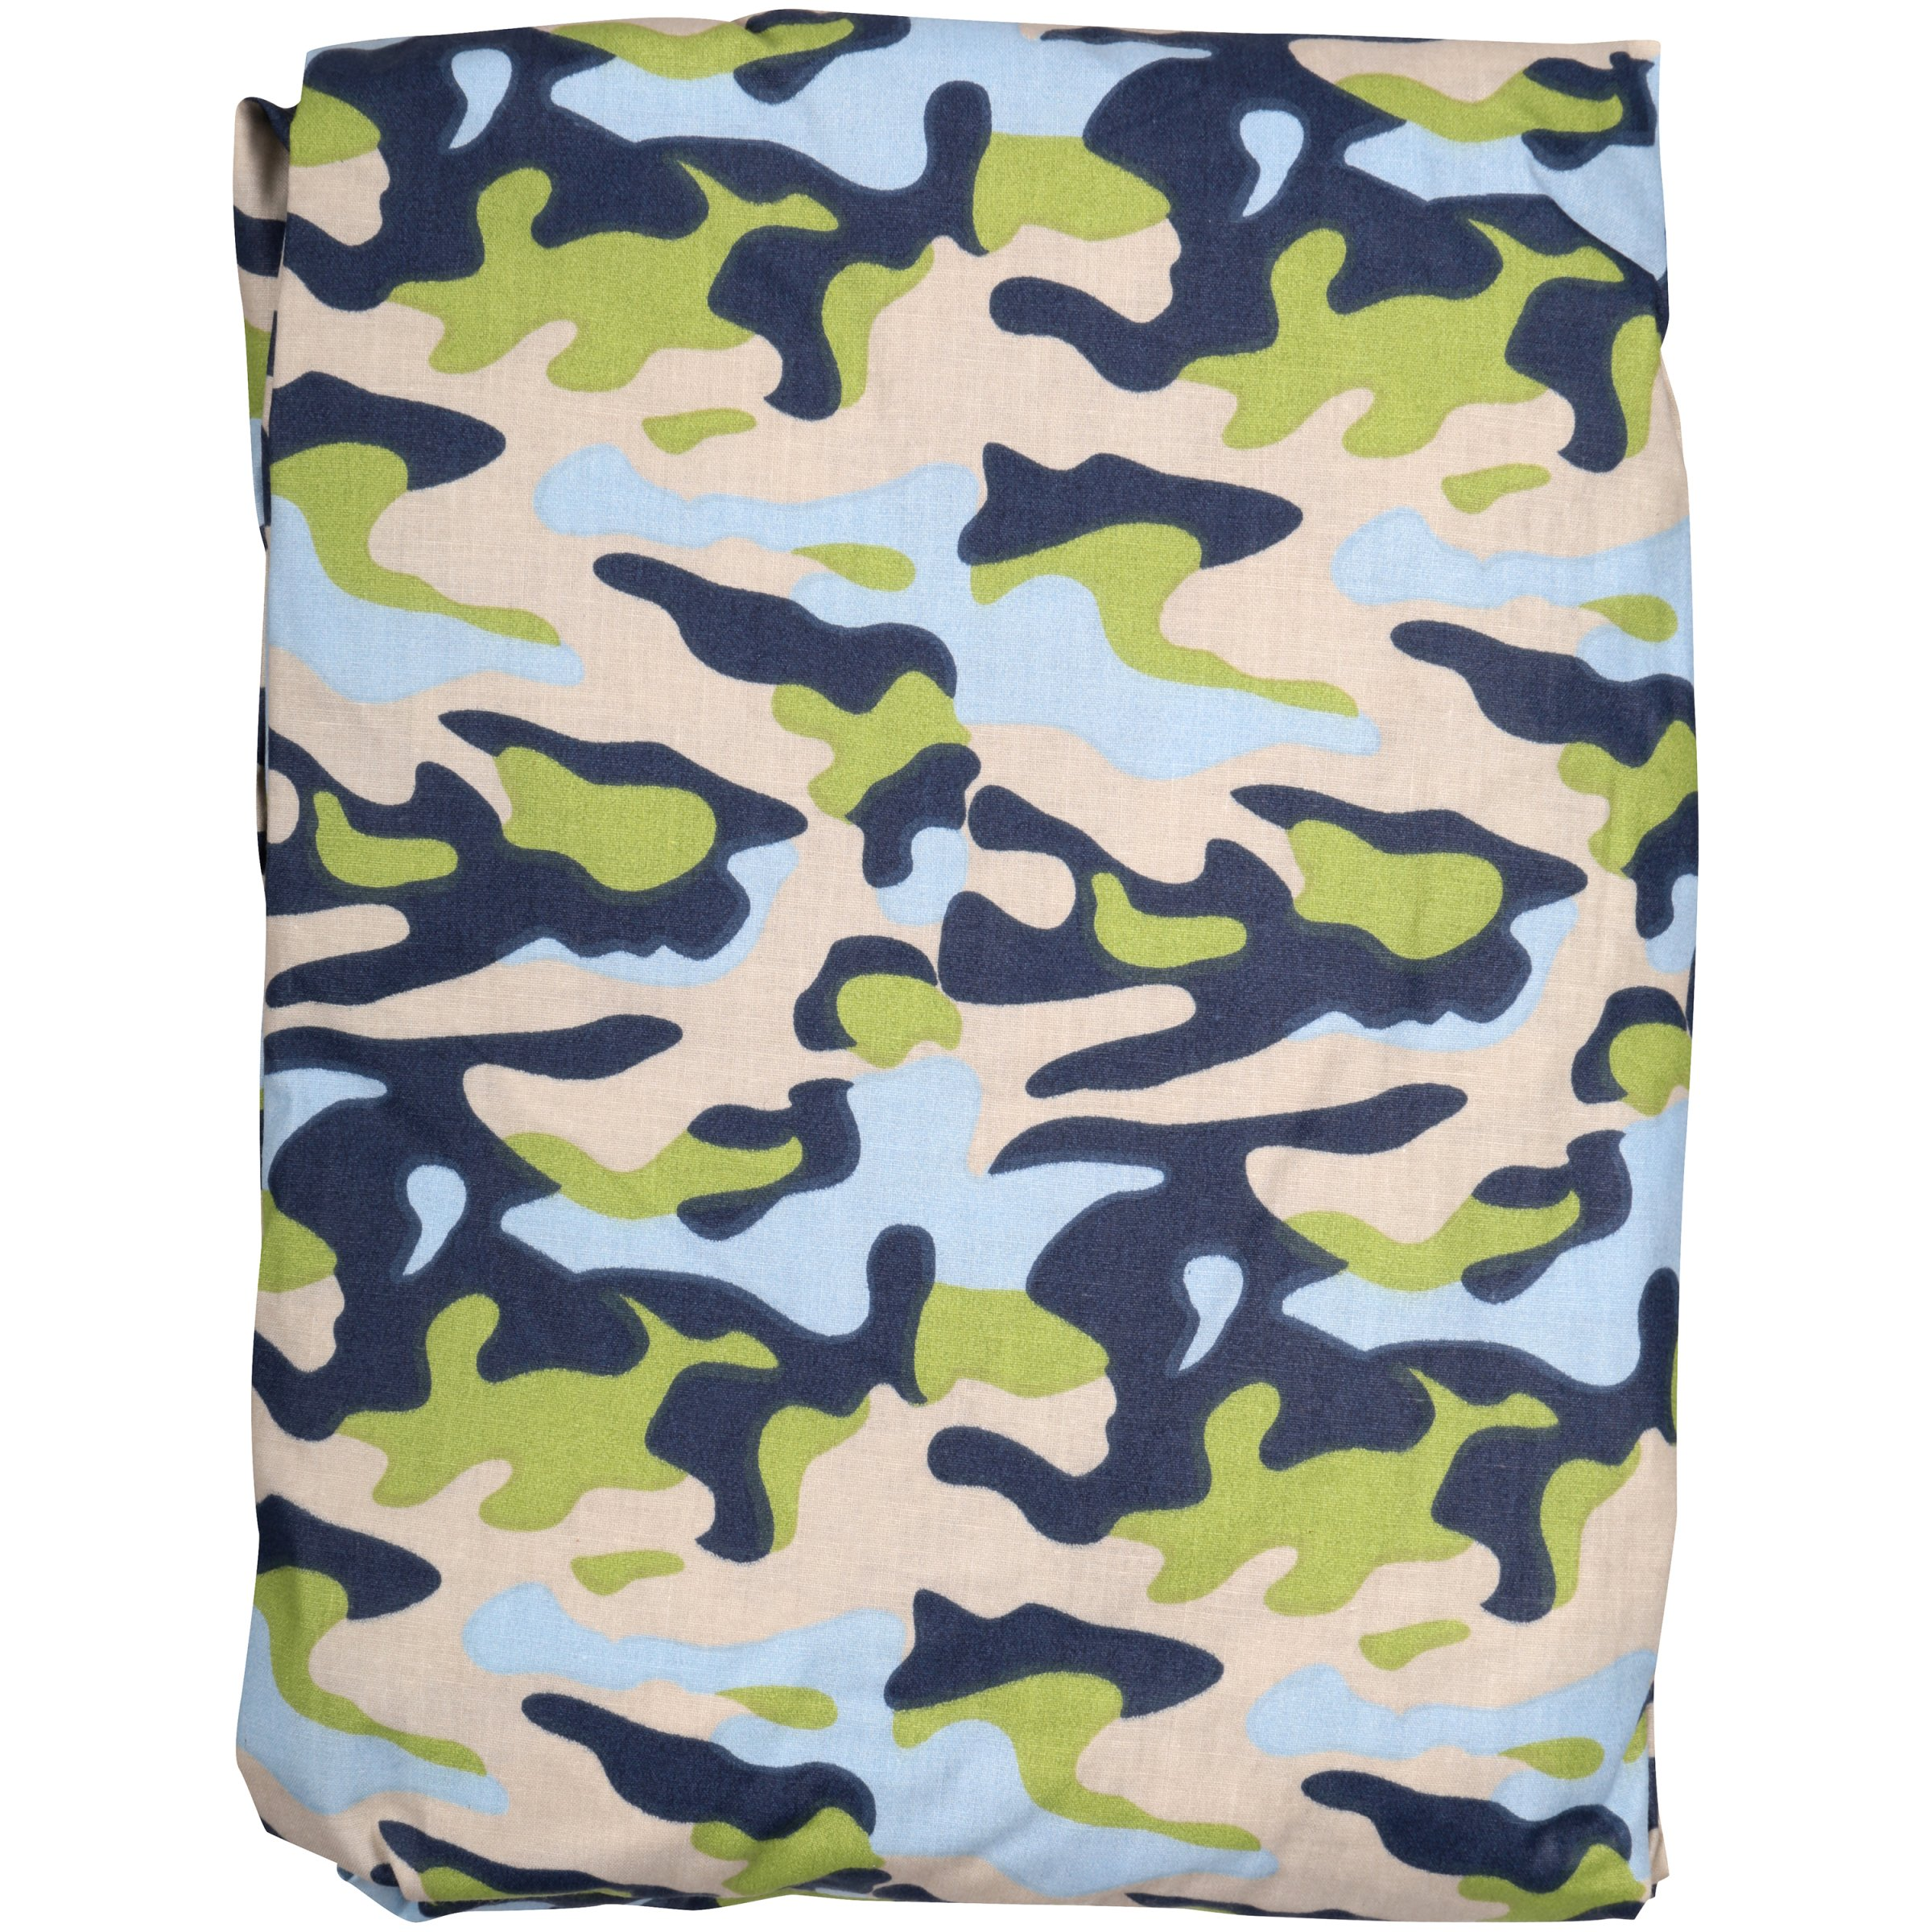 Bacati Camo Air Printed Crib Fitted Sheet Set 2 pc Pack